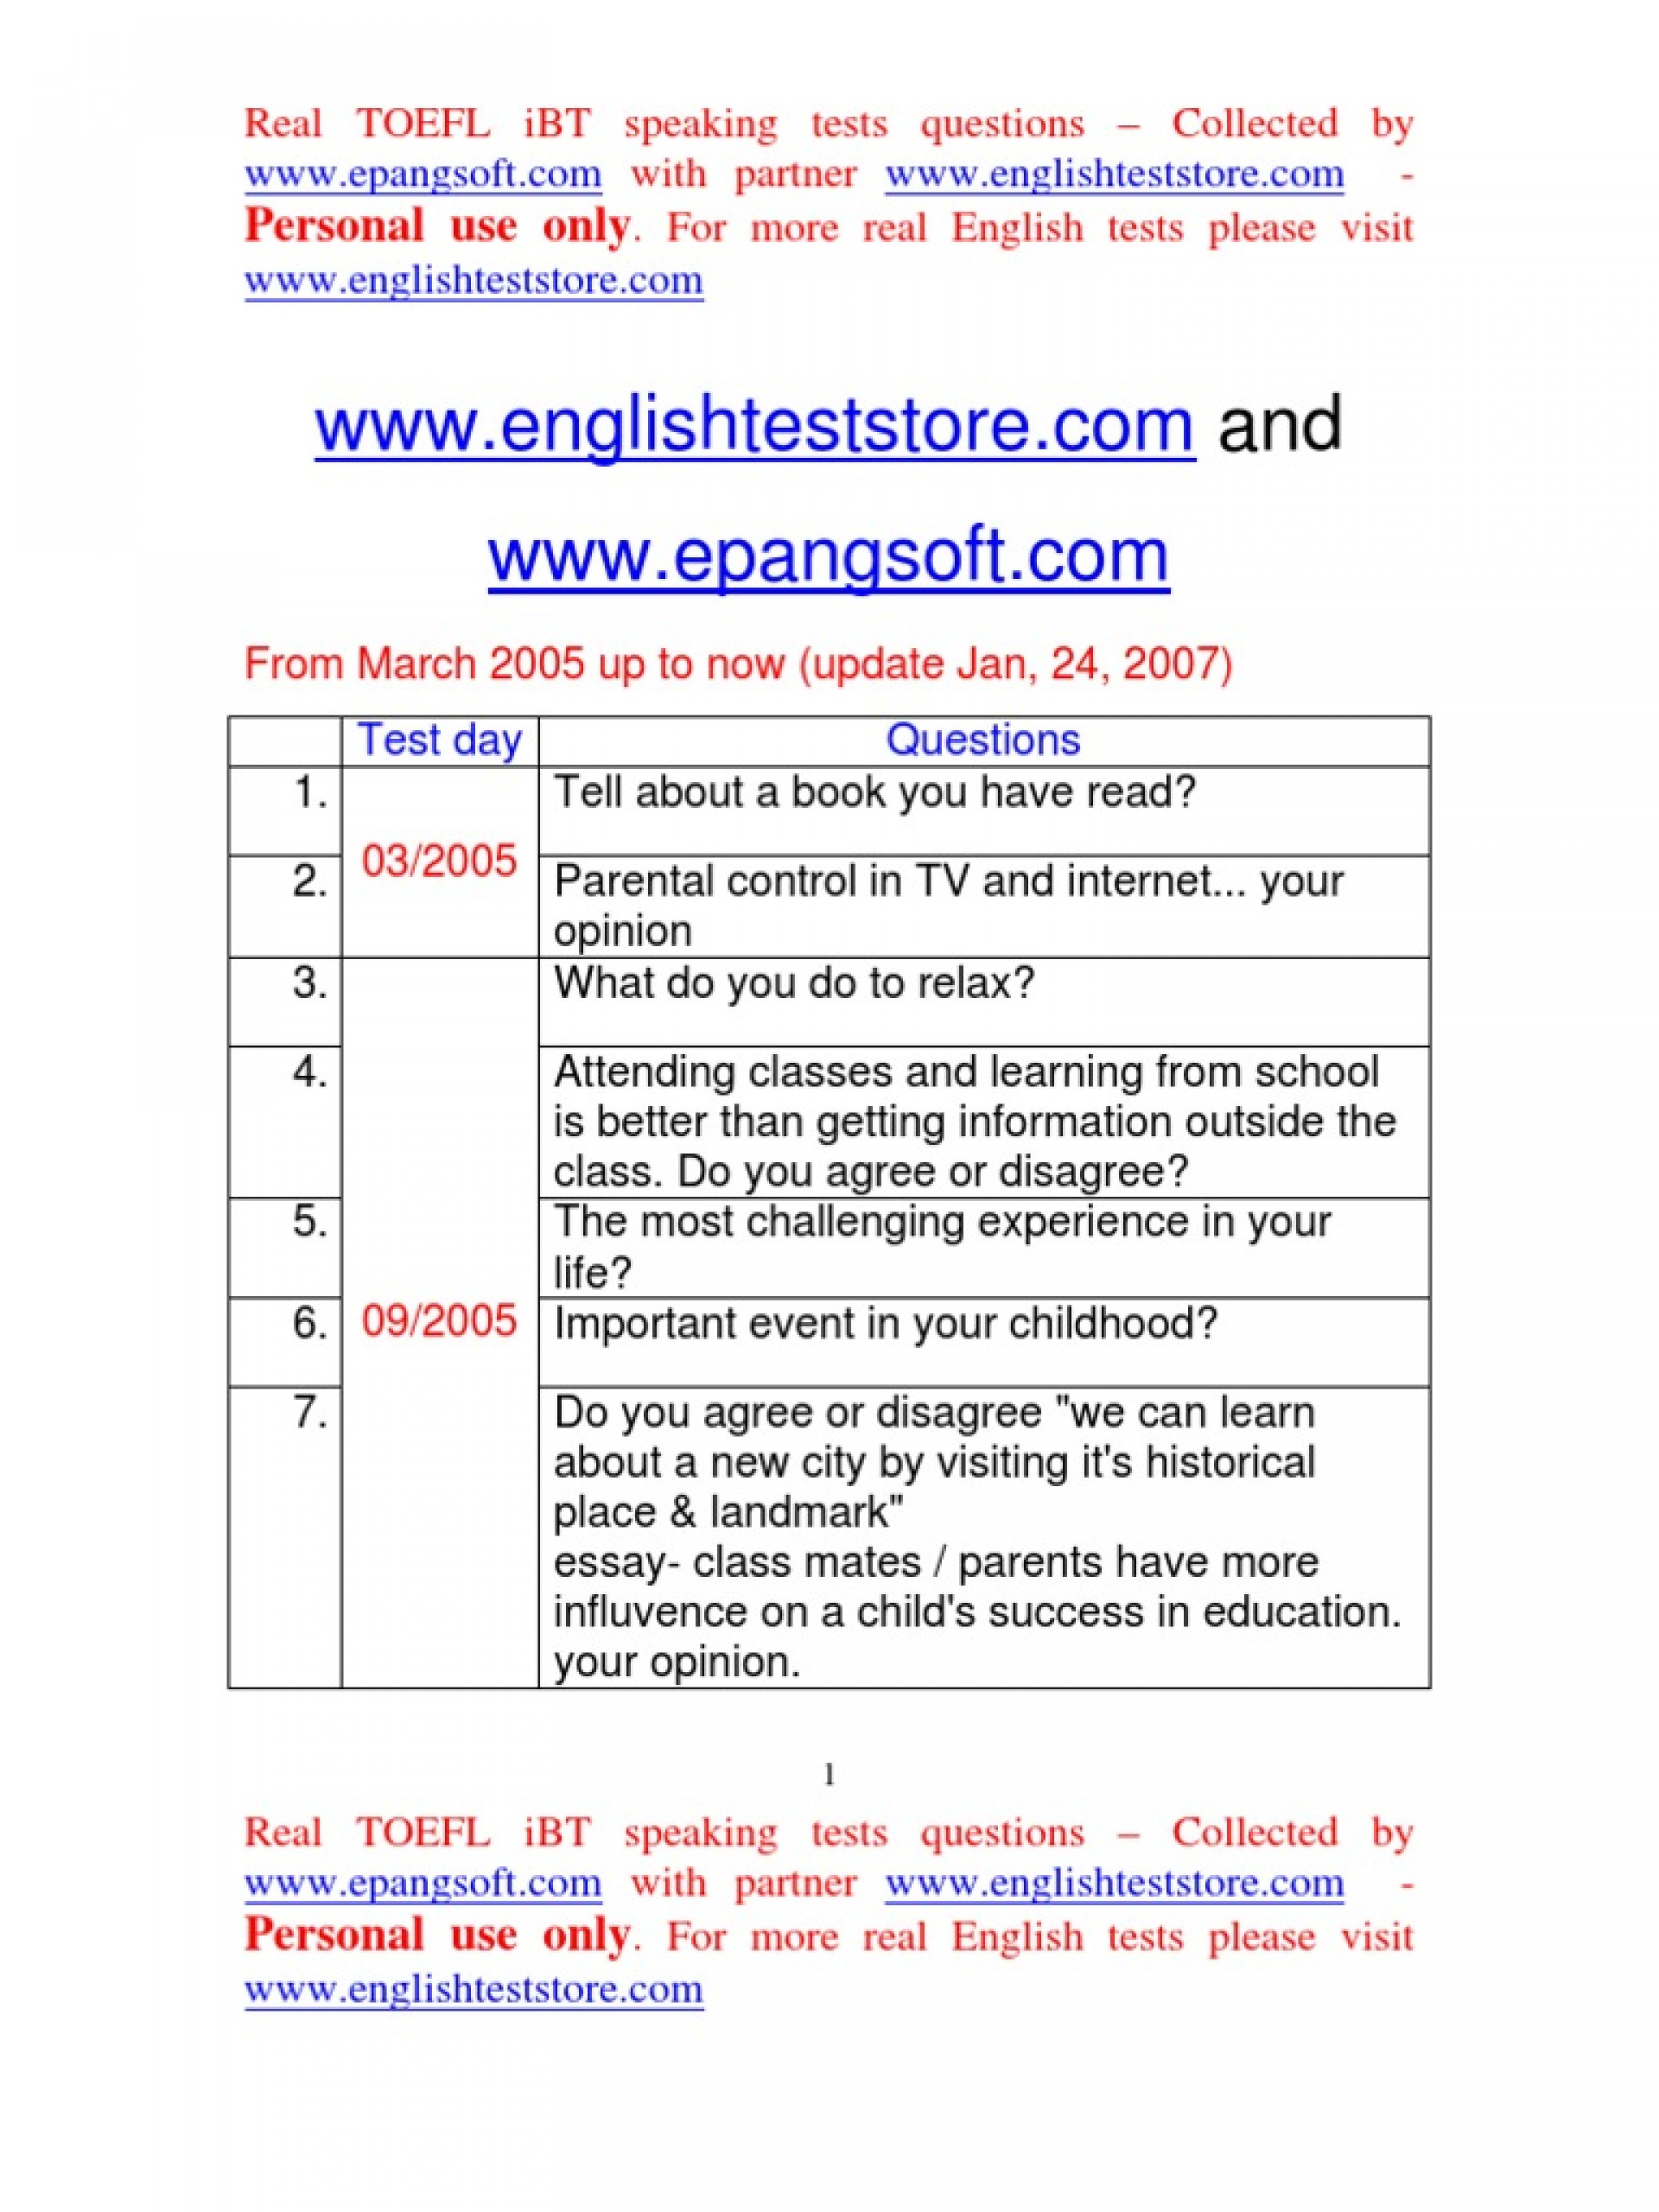 009 Essay Example Toefl Topic Preparat Oacute Rio Nashville Docshare Tips Real Ibt Speaking Test Questions From March  58517c54b6d87f49628 Taking For Topics Striking 20151920